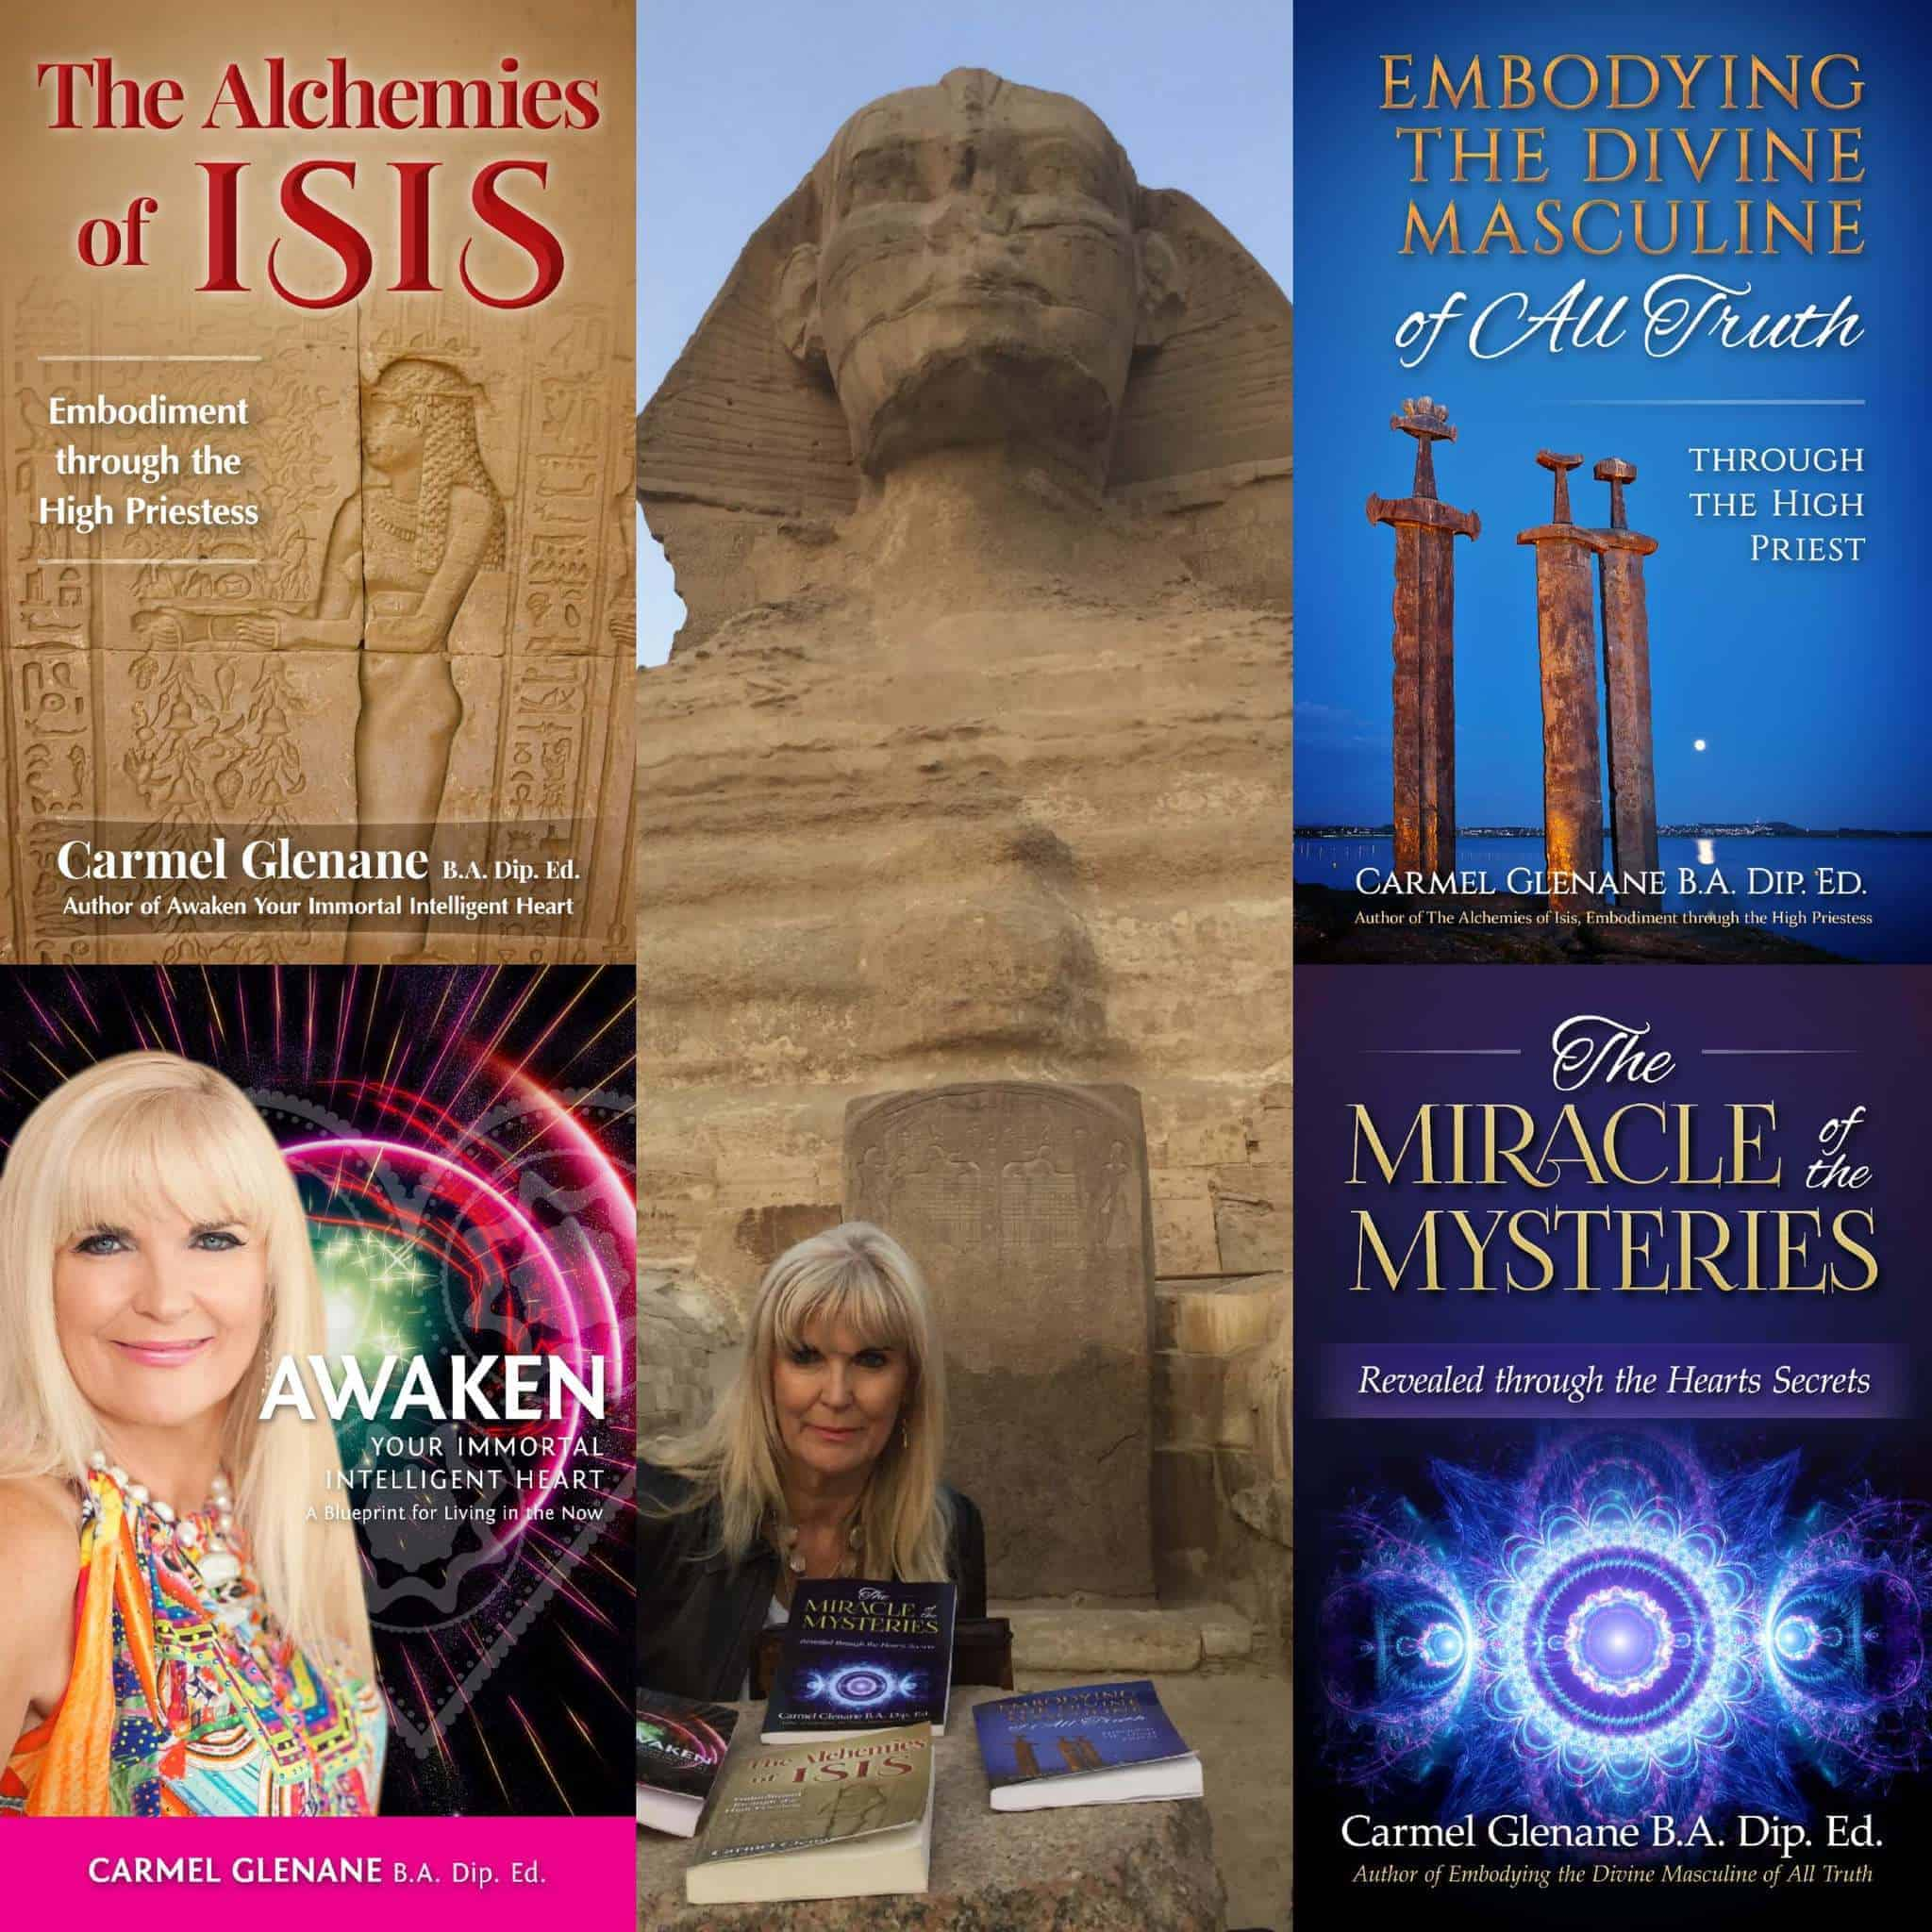 Mystery School Ascension Training programmes available. Heart Activation Training program and Egypt